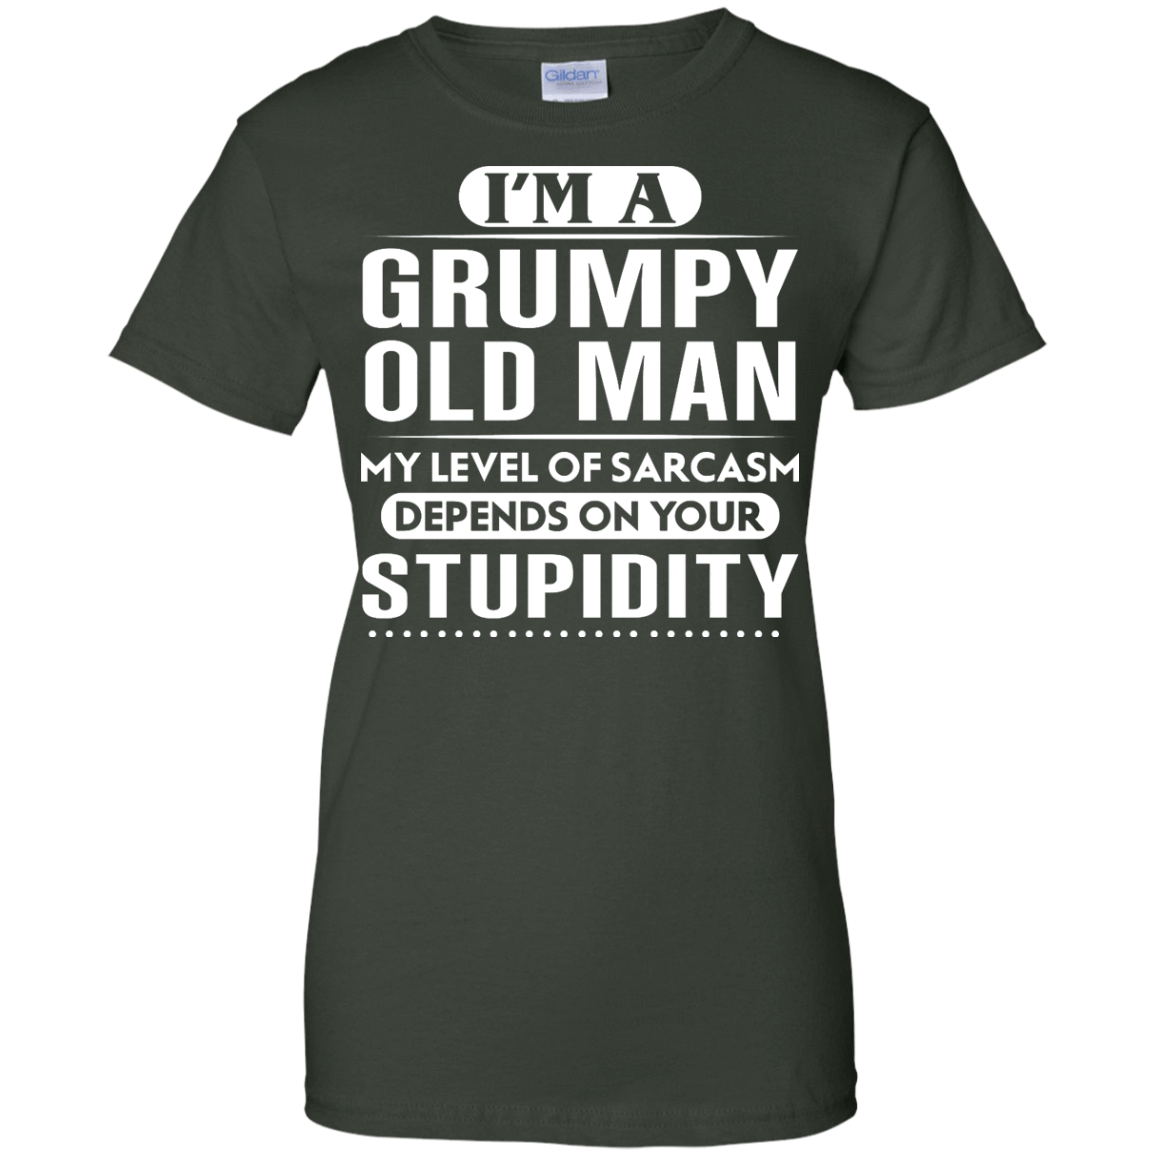 Iu0027m A Grumpy Old Man My Level Of Sarcasm Depends On Your Stupidity Shirt,  Hoodie, Tank - Grumpy Old Man PNG